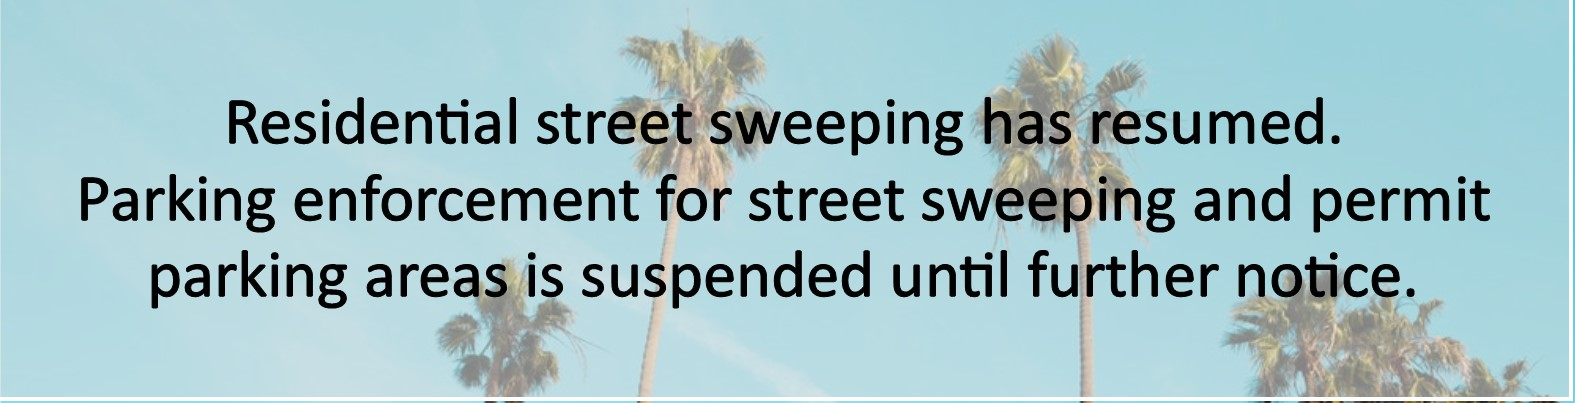 COVID 19 - Banner for Street Sweeping AND Parking enforcement